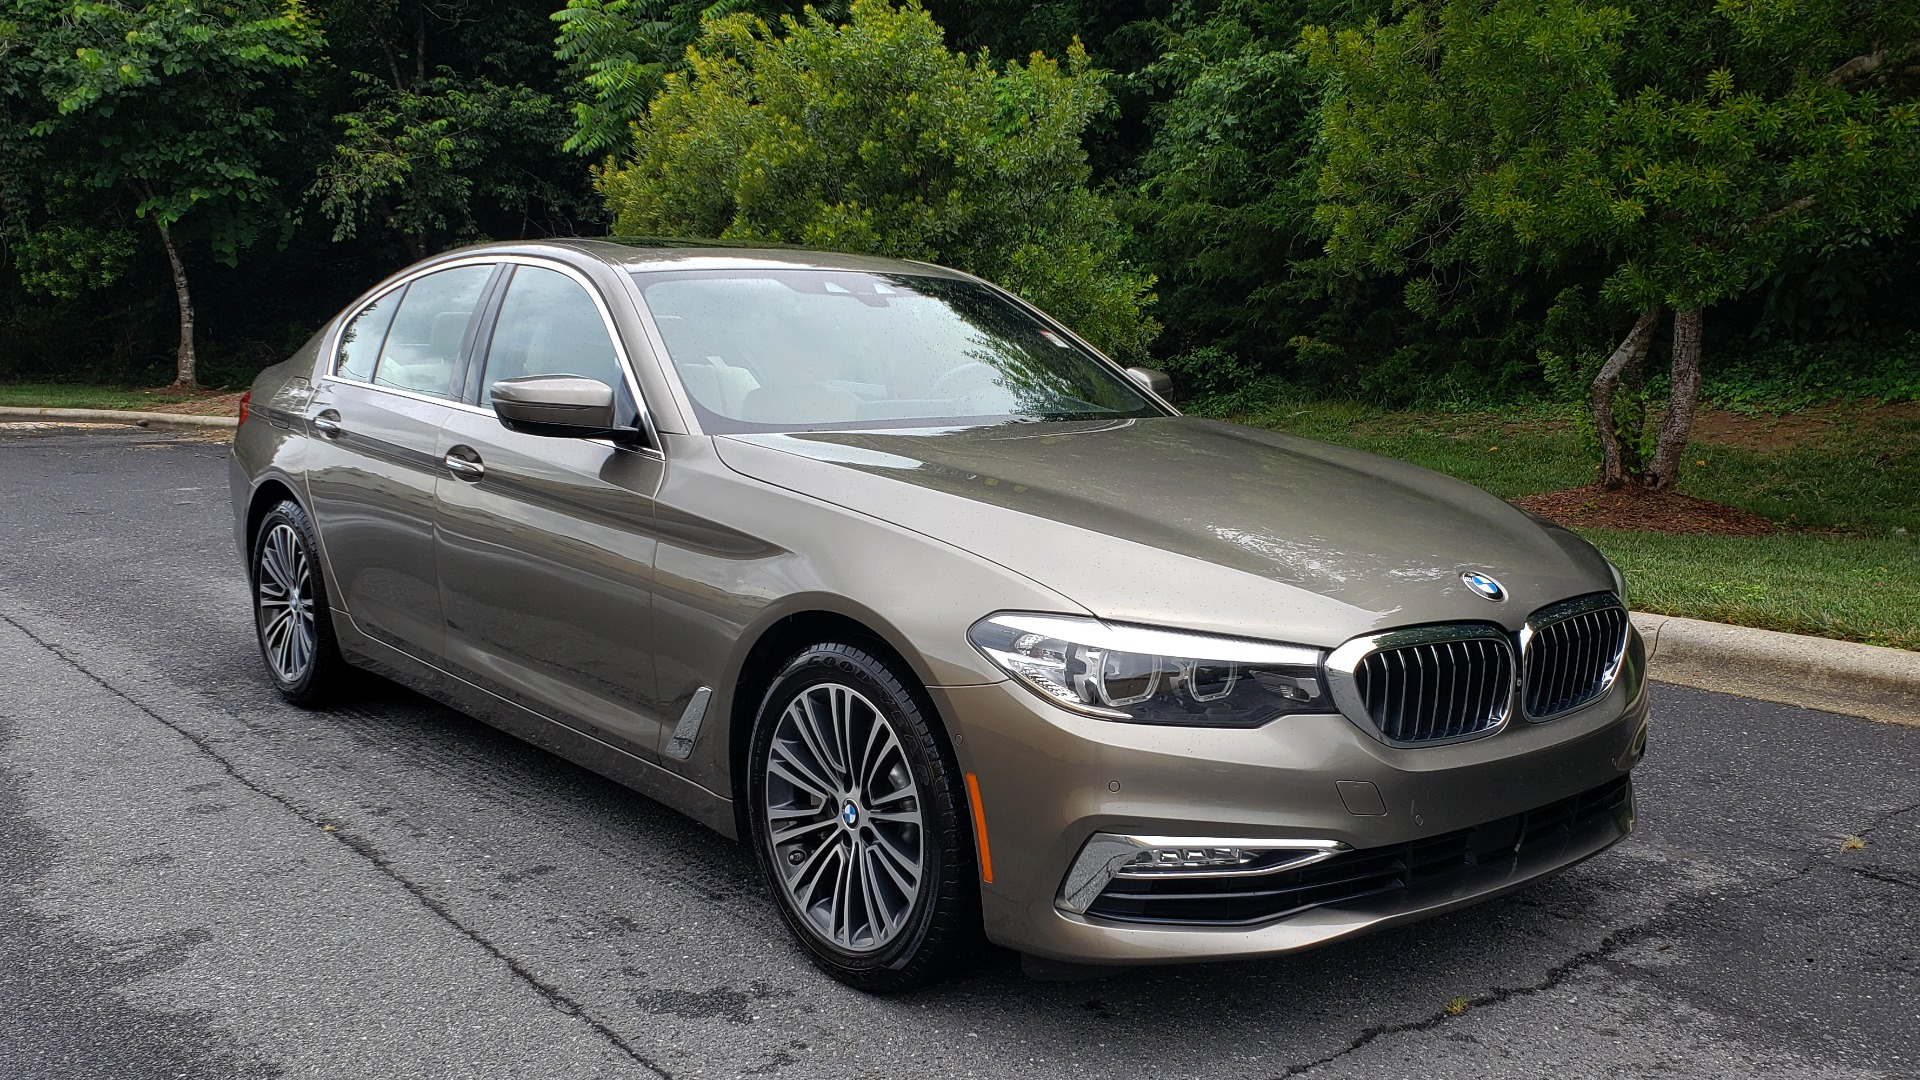 Used 2017 BMW 5 SERIES 530I PREMIUM / NAV / SUNROOF / DRVR ASST PLUS II / LUXURY for sale Sold at Formula Imports in Charlotte NC 28227 11